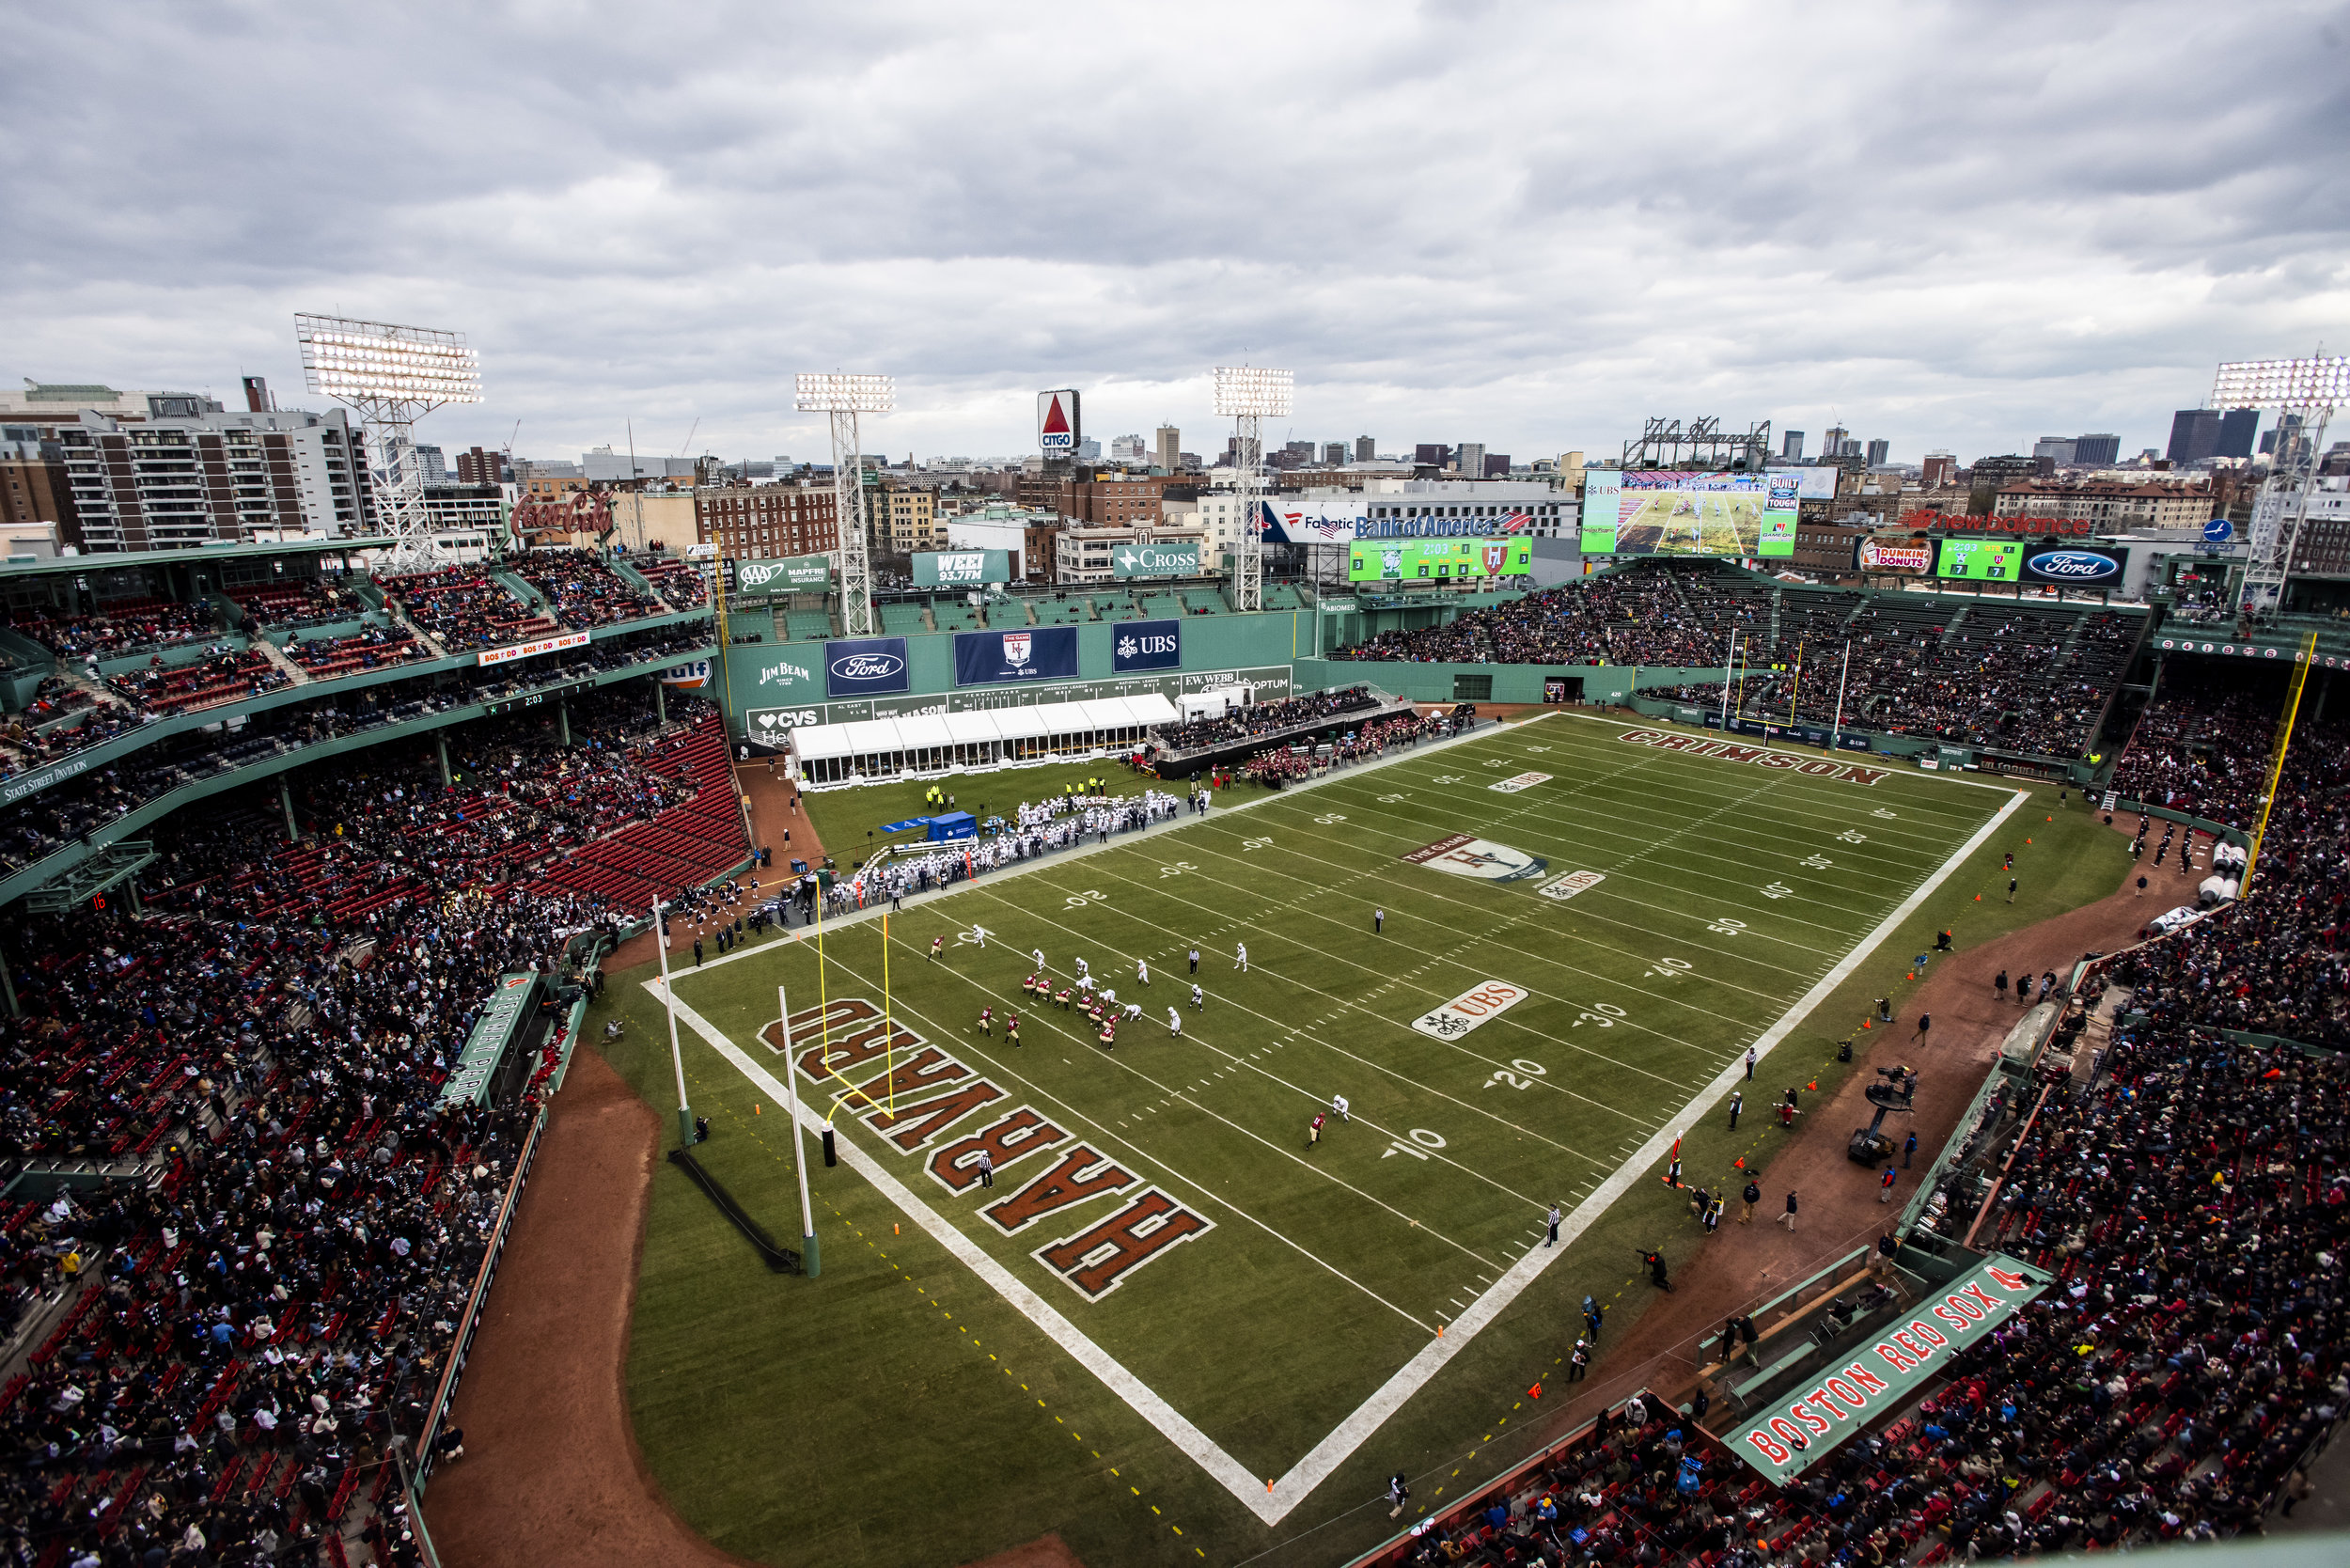 November 16, 2018, Boston, MA: A wide shot of the field during the Harvard University and Yale University football Game at Fenway Park in Boston, Massachusetts on Thursday, November 16, 2018. (Photo by Matthew Thomas/Boston Red Sox)